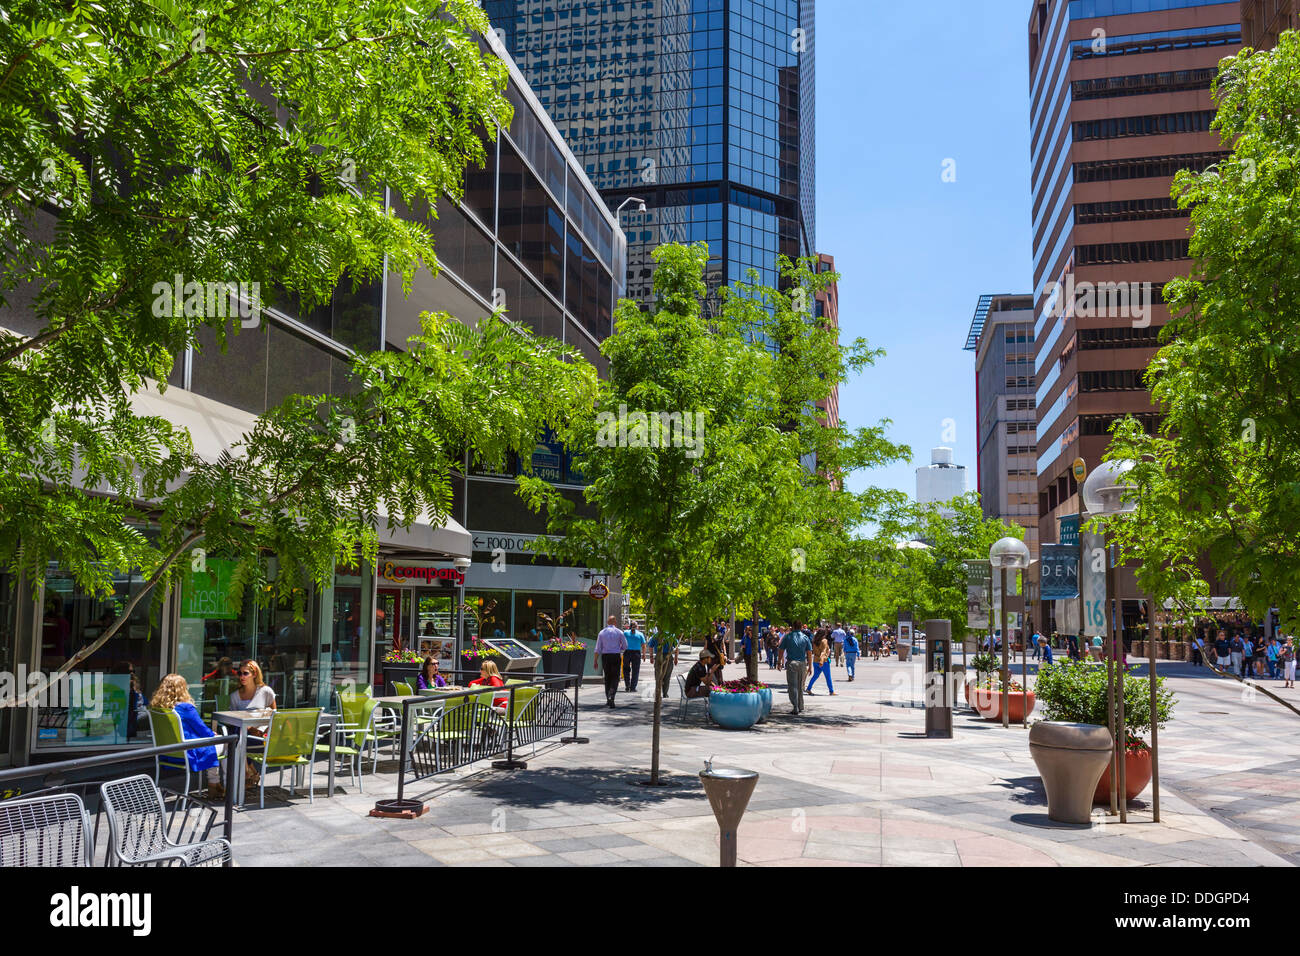 Cafe and shops on the pedestrianised 16th Street Mall in downtown Denver, Colorado, USA - Stock Image